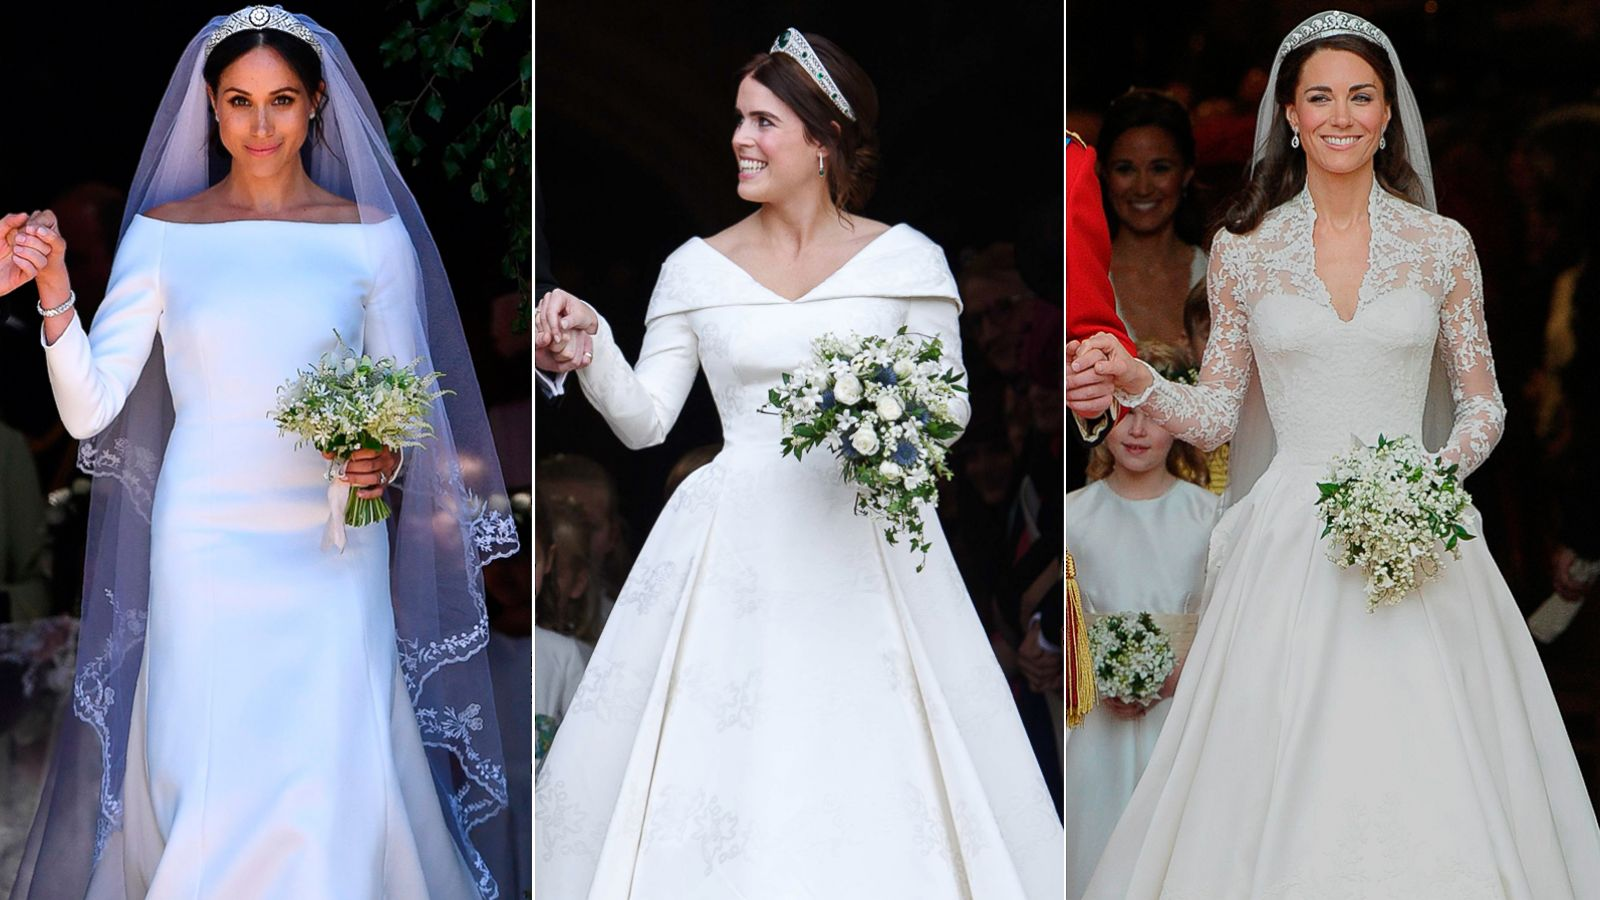 princess eugenie duchess meghan and princess kate s wedding dresses all shared a special similarity gma princess eugenie duchess meghan and